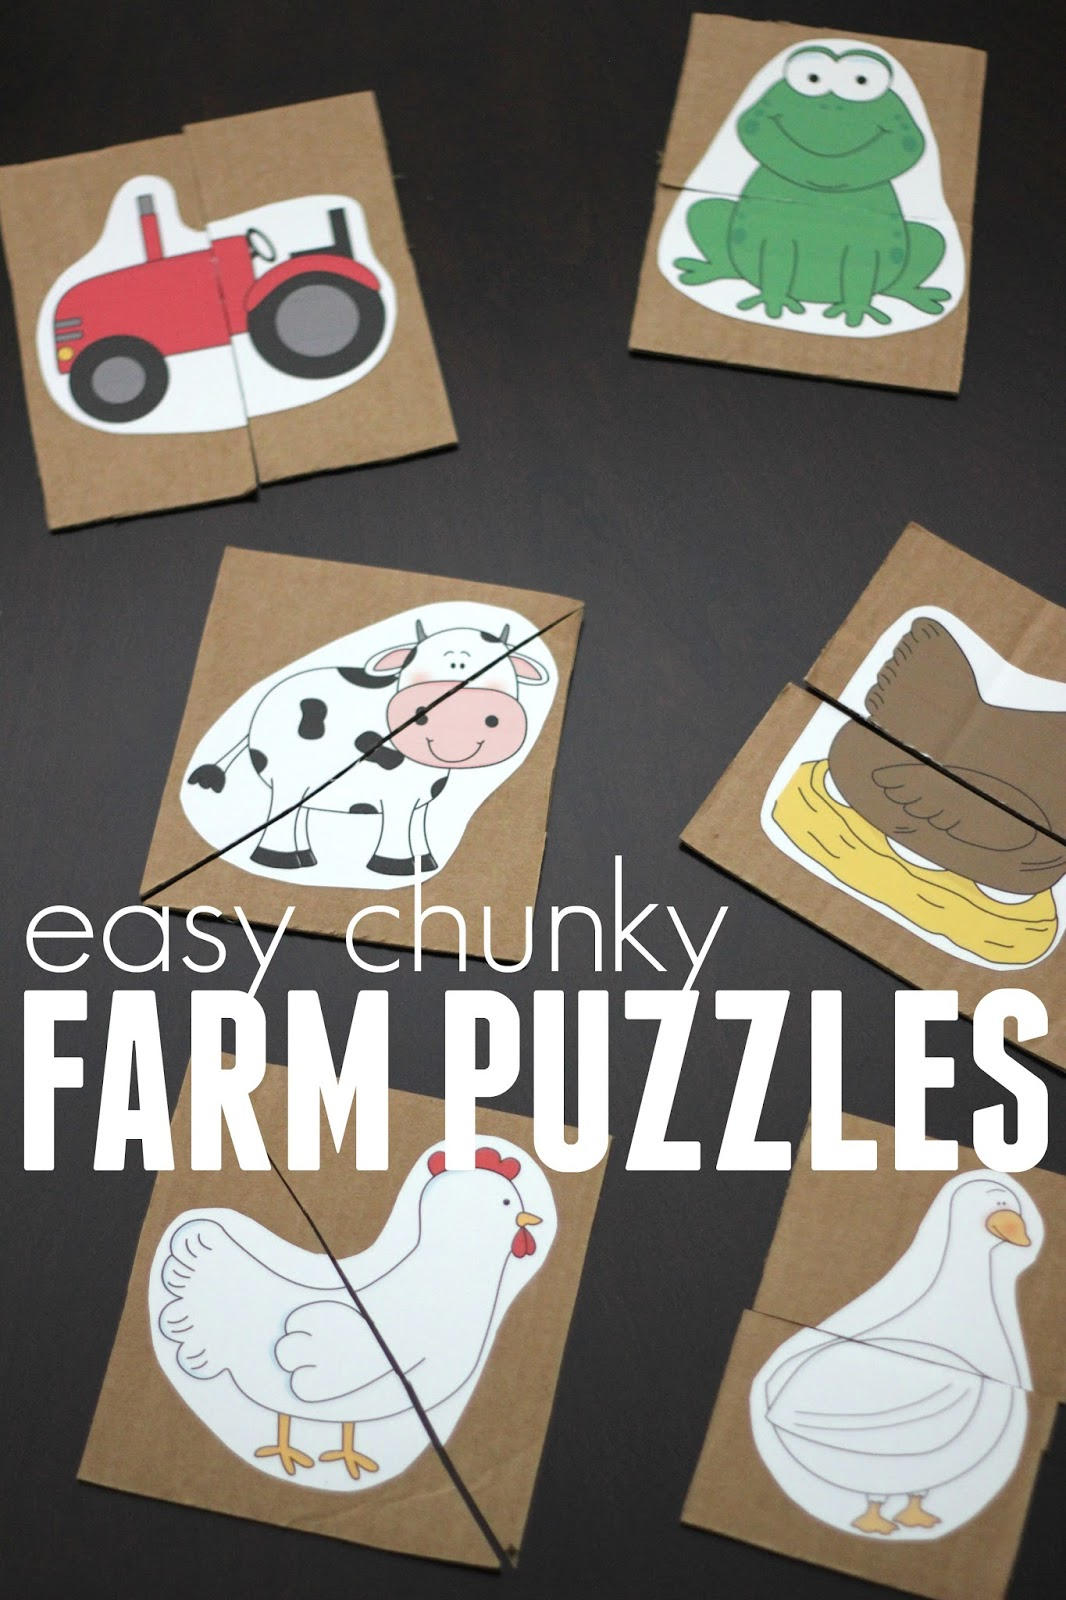 farm activities puzzle game animal toddler match animals learning puzzles activity hide preschool toddlers matching diy crafts games easy week